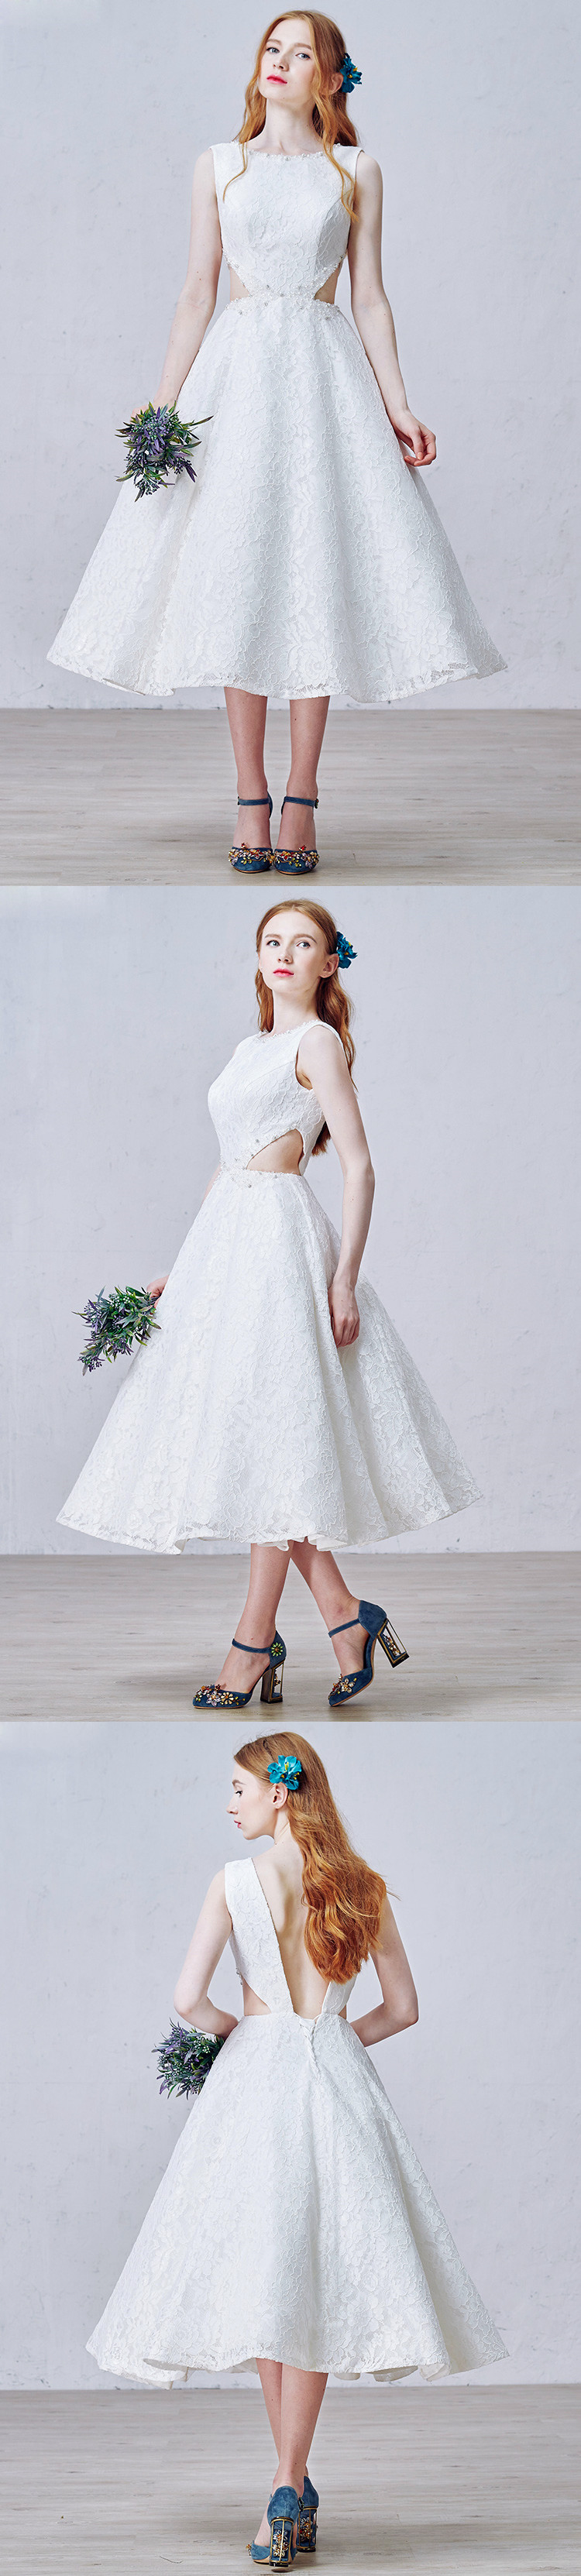 Custom made-to-order formal dress by GemGrace. Multiple colors and all sizes available. Additional photos also available upon request. Shop this vintage yet modern tea-length open waist wedding dress on GemGrace.com